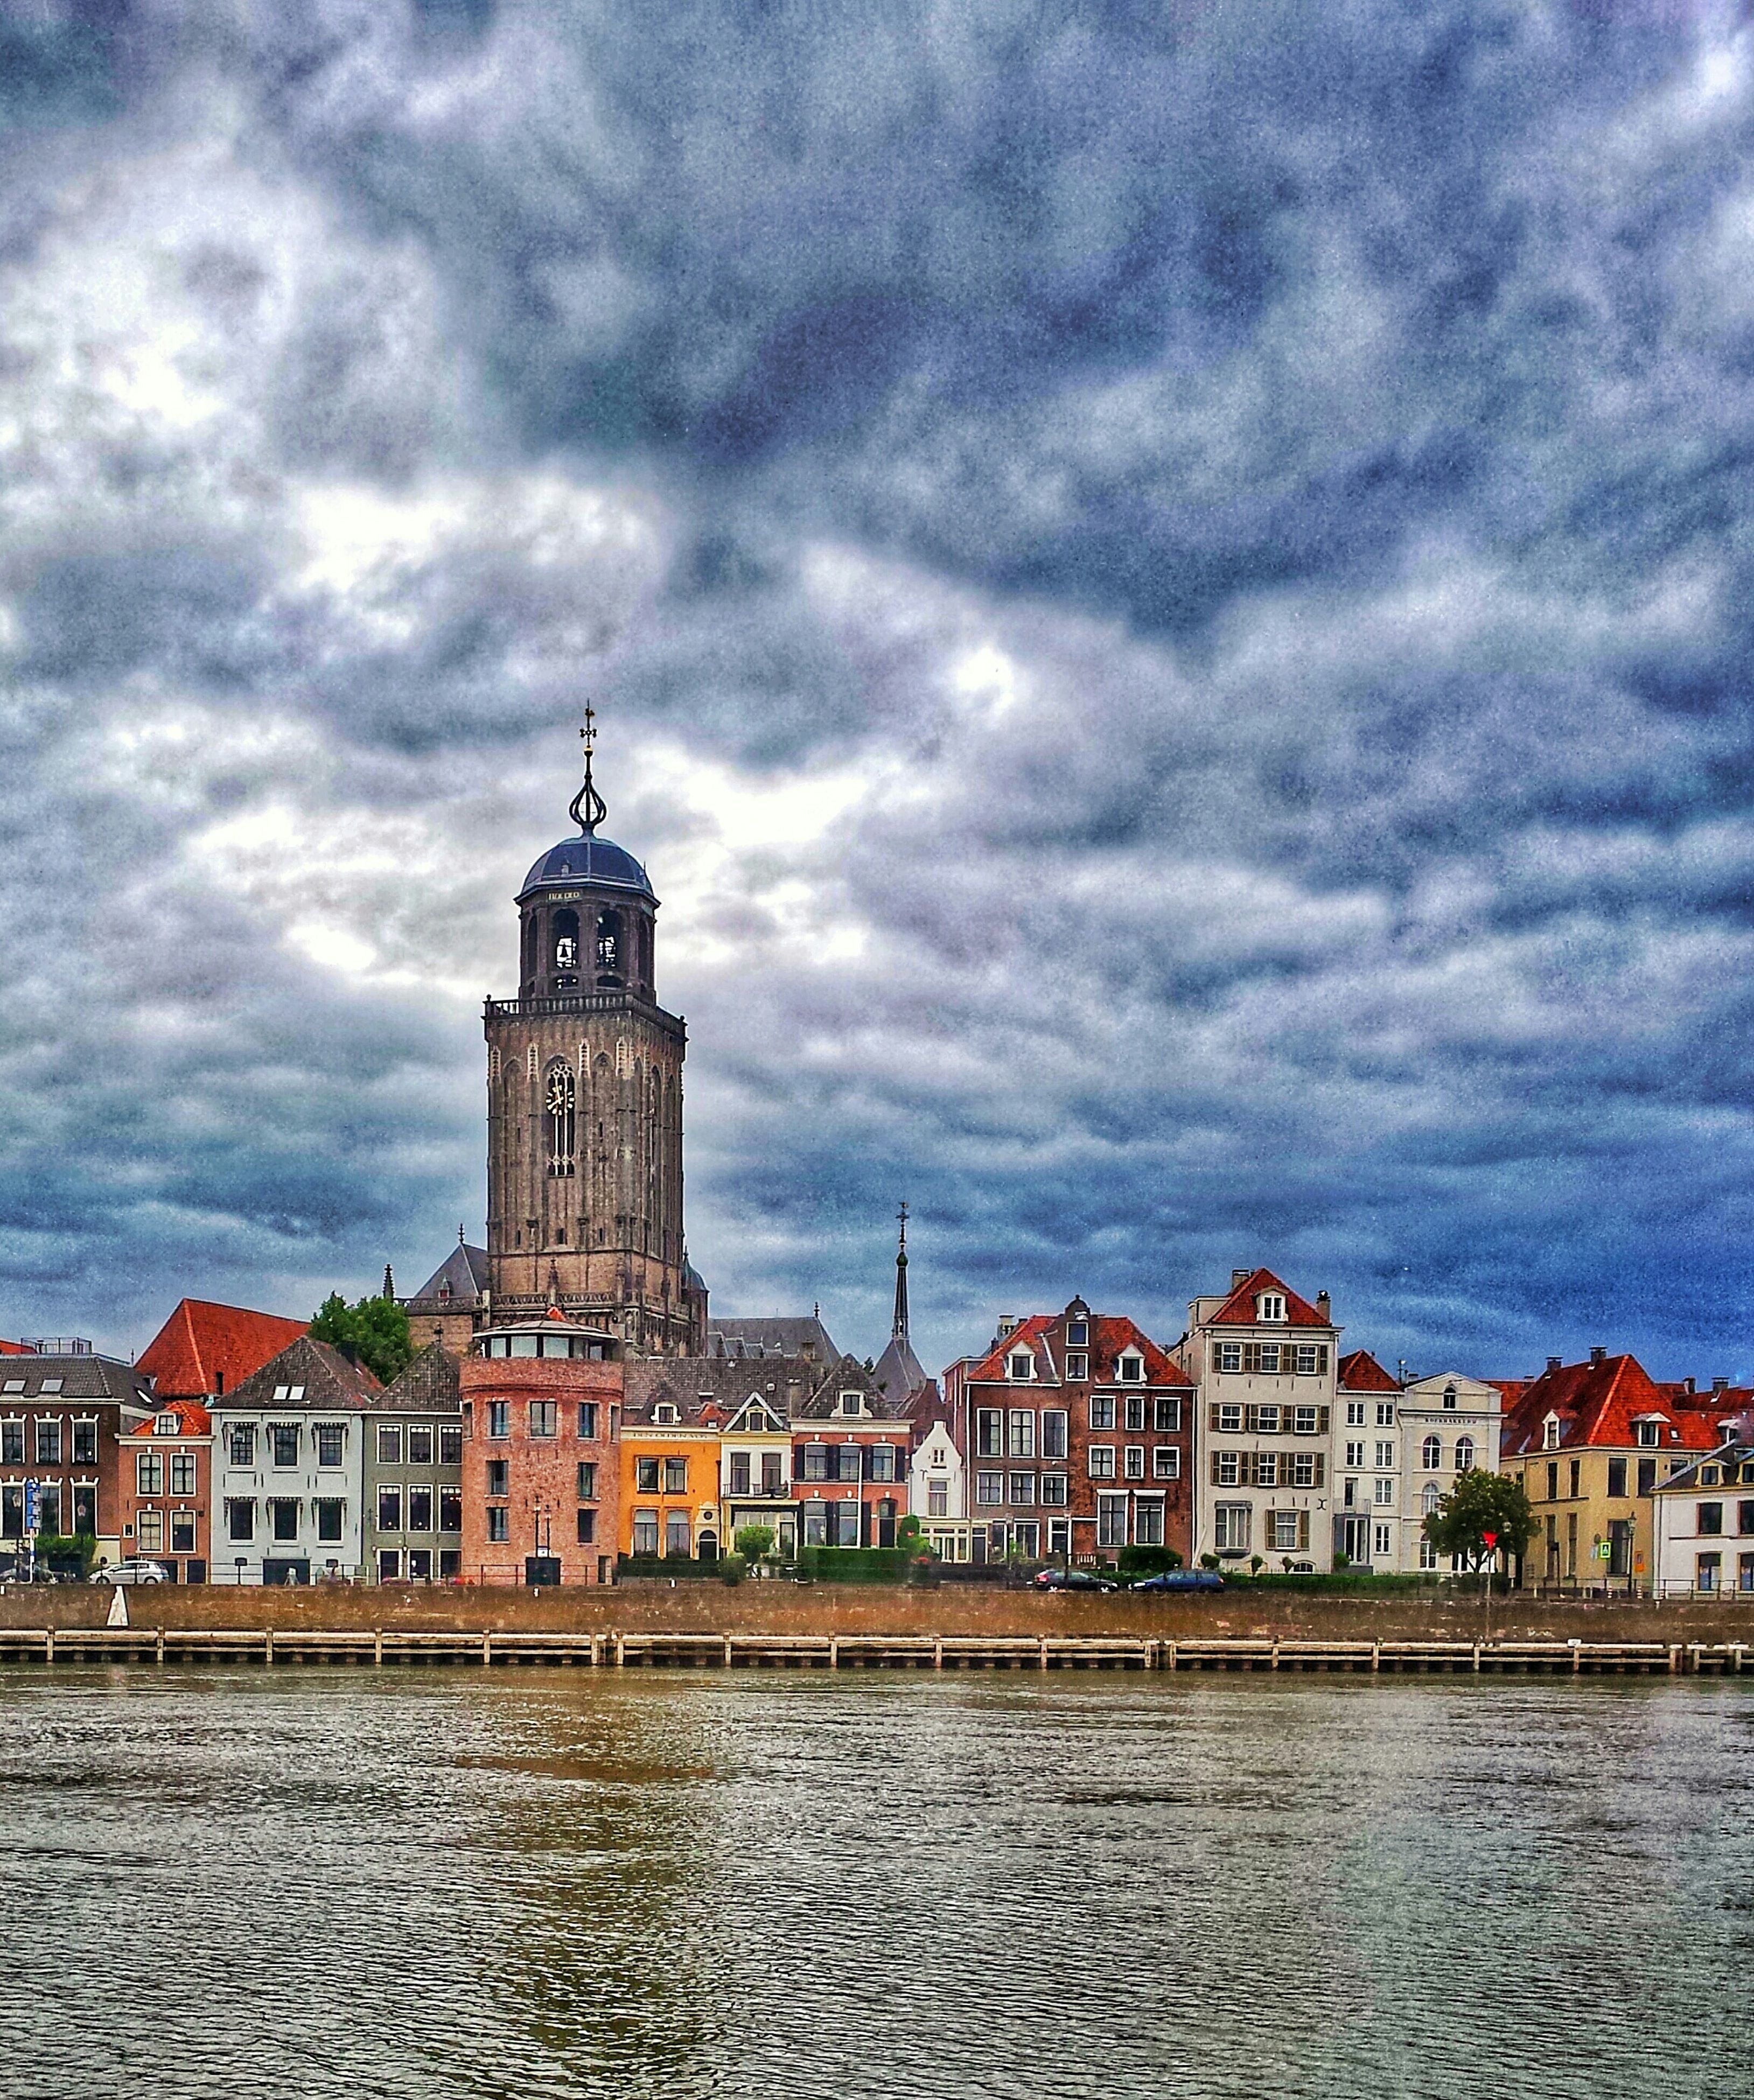 architecture, building exterior, built structure, sky, cloud - sky, water, cloudy, waterfront, weather, cloud, overcast, river, storm cloud, city, residential structure, rippled, residential building, day, outdoors, building